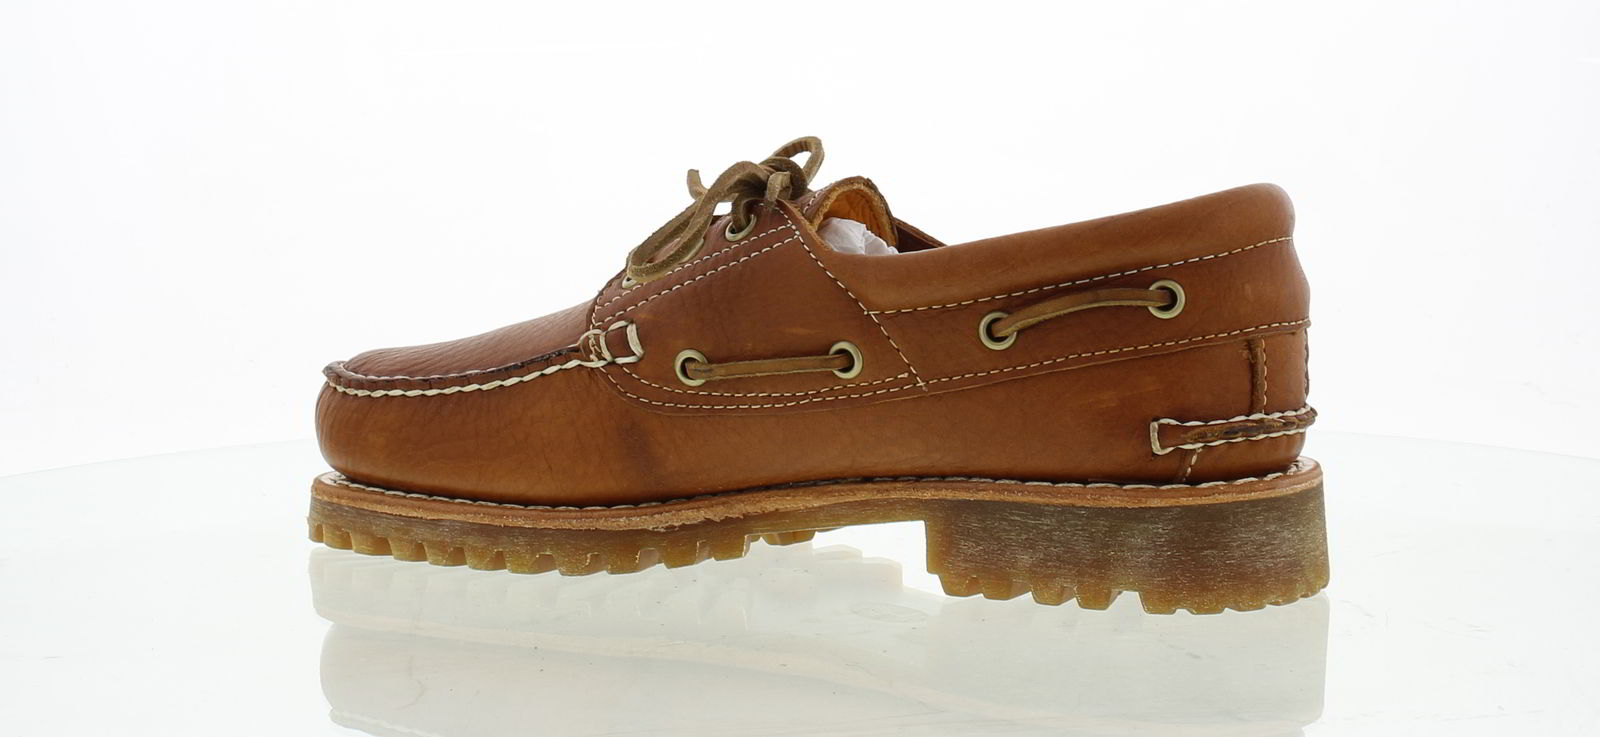 Caterpillar Tan Deck Shoes Mens